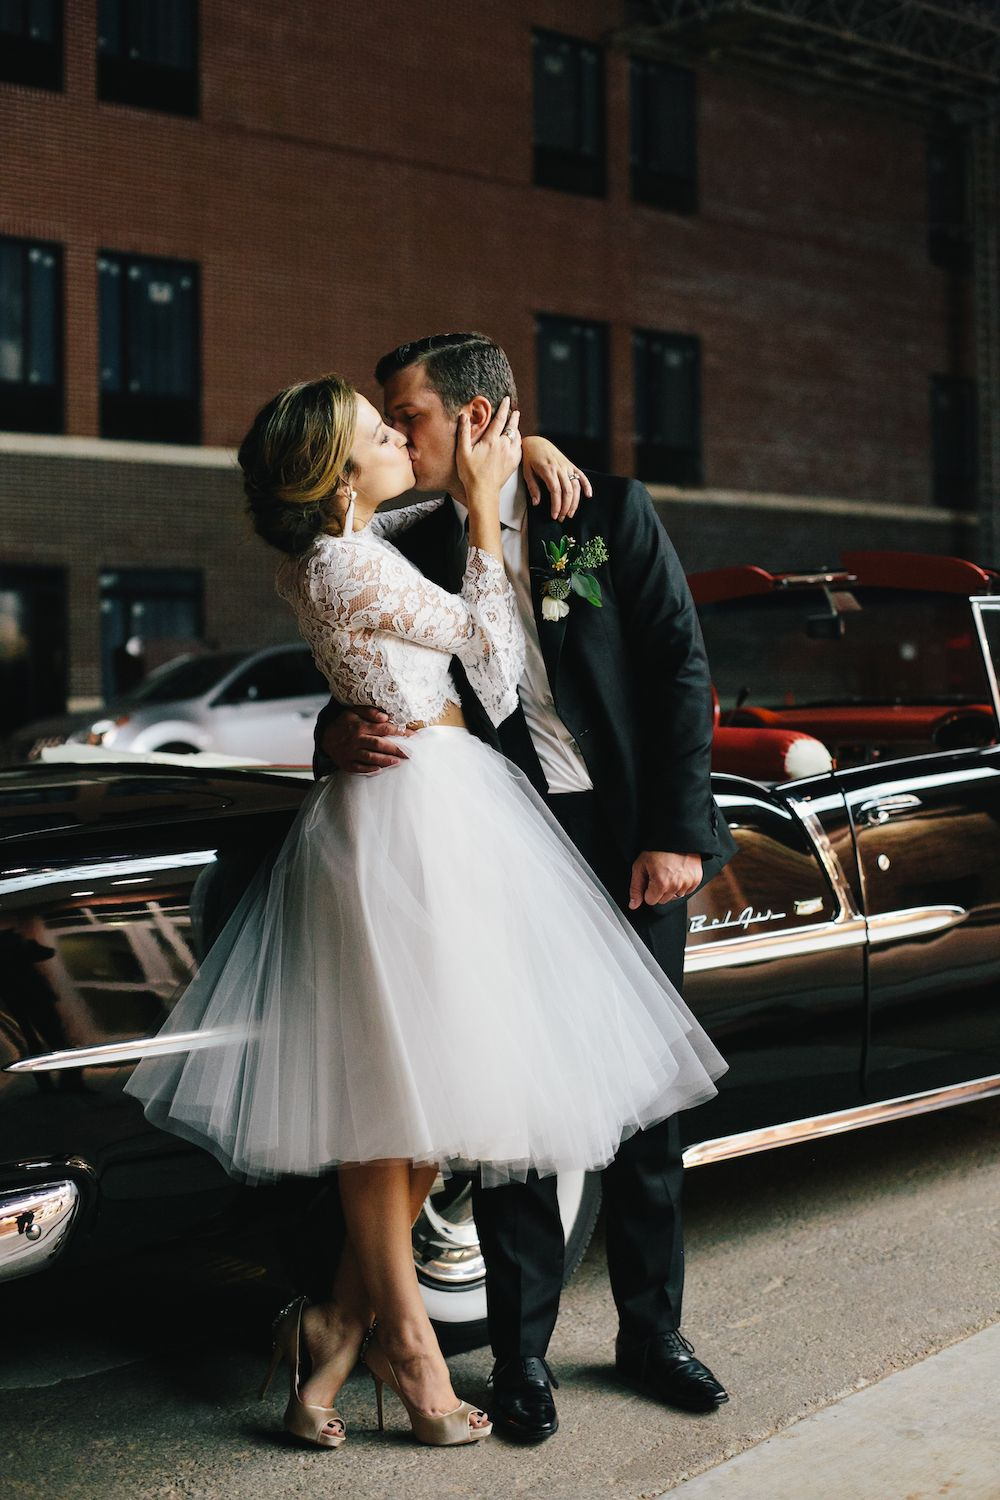 Aaron Snow Photography Oklahoma Wedding Photographer Criterion OKC Vintage Bride Groom Kissing Kiss Dress Legs Shoes